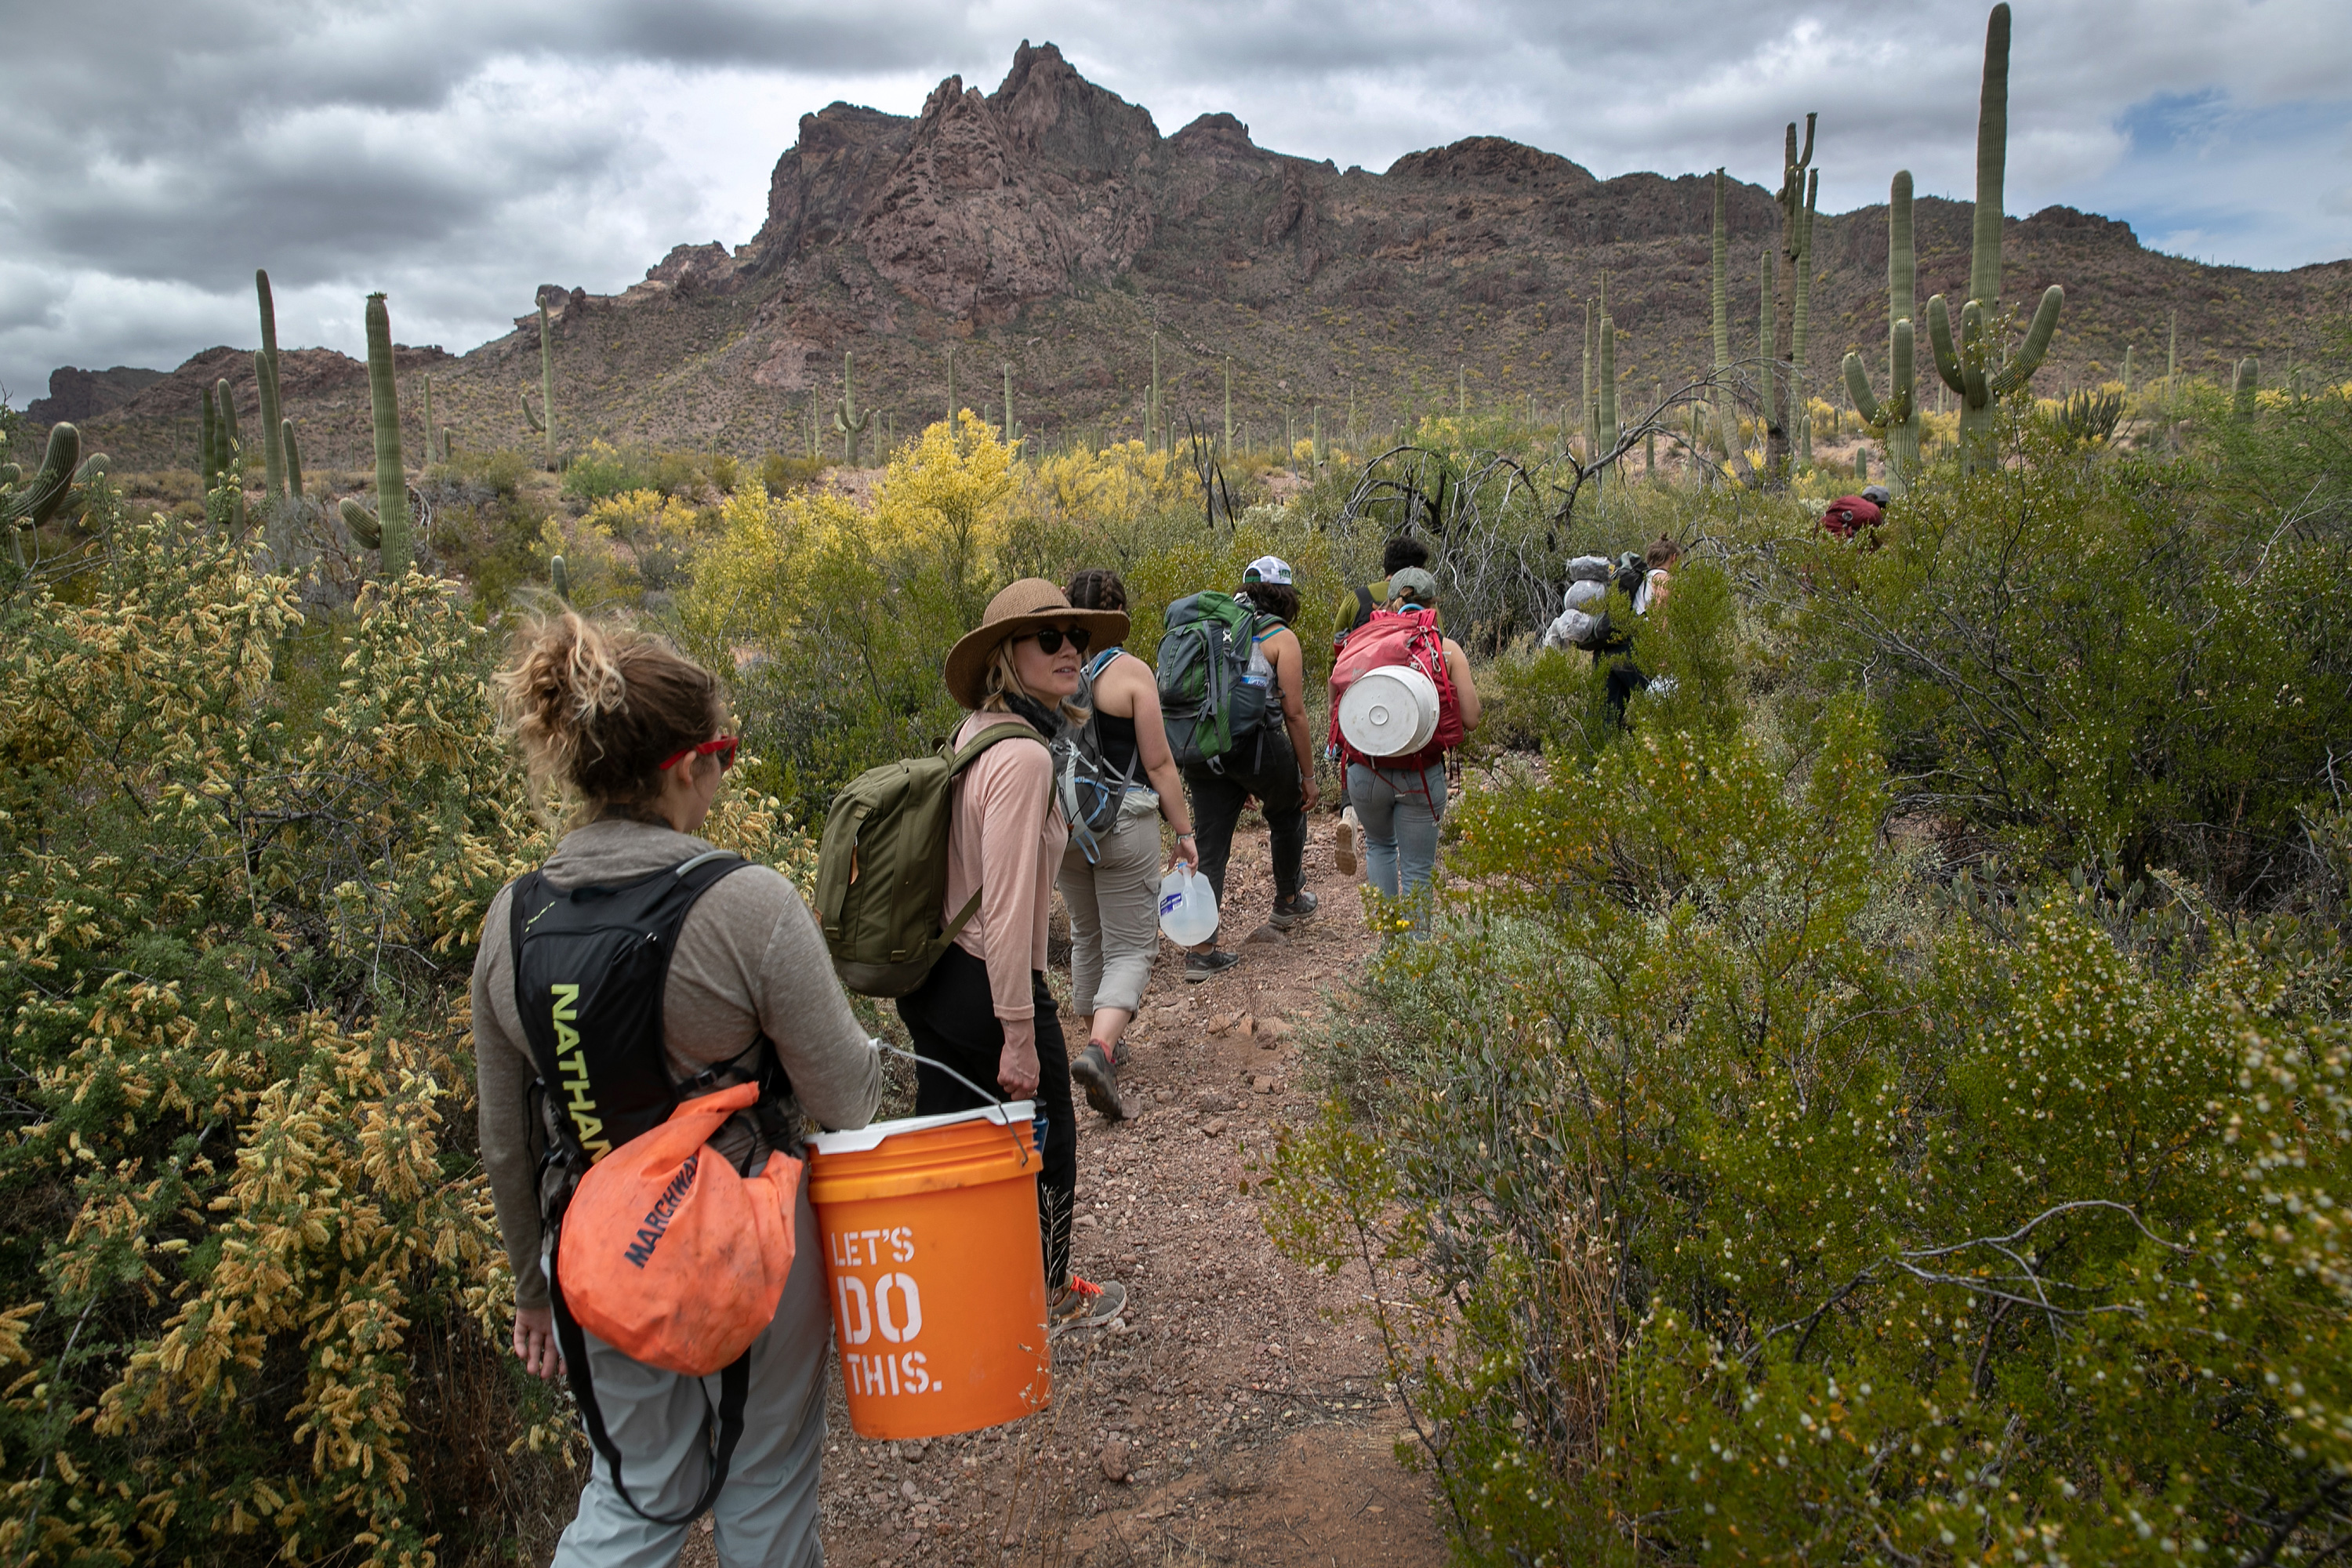 AJO, ARIZONA - MAY 10: Volunteers for the humanitarian aid organization No More Deaths walk with buckets of food and jugs of water for undocumented immigrants on May 10, 2019 near Ajo, Arizona. The volunteers distributed the aid along trails in remote areas where immigrants pass after crossing the border from Mexico. The number of immigrant deaths, mostly due to dehydration and exposure, has risen as higher border security in urban border areas has pushed immigrant crossing routes into more remote desert regions. No More Deaths volunteer Scott Warren is scheduled to appear in federal court on May 29 in Tucson, charged by the U.S. government on two counts of harboring and one count of conspiracy for aiding two Central American immigrants in January, 2018. If found guilty Warren could face up to 20 years in prison. The trial is seen as a watershed case by the Trump Administration, as it pressures humanitarian organizations working to reduce suffering and deaths of immigrants in remote areas along the border. The government claims the aid encourages human smuggling. In a separate misdemeanor case, federal prosecutors have charged Warren with public littering, for distributing food and water along migrant trails. (Photo by John Moore/Getty Images)